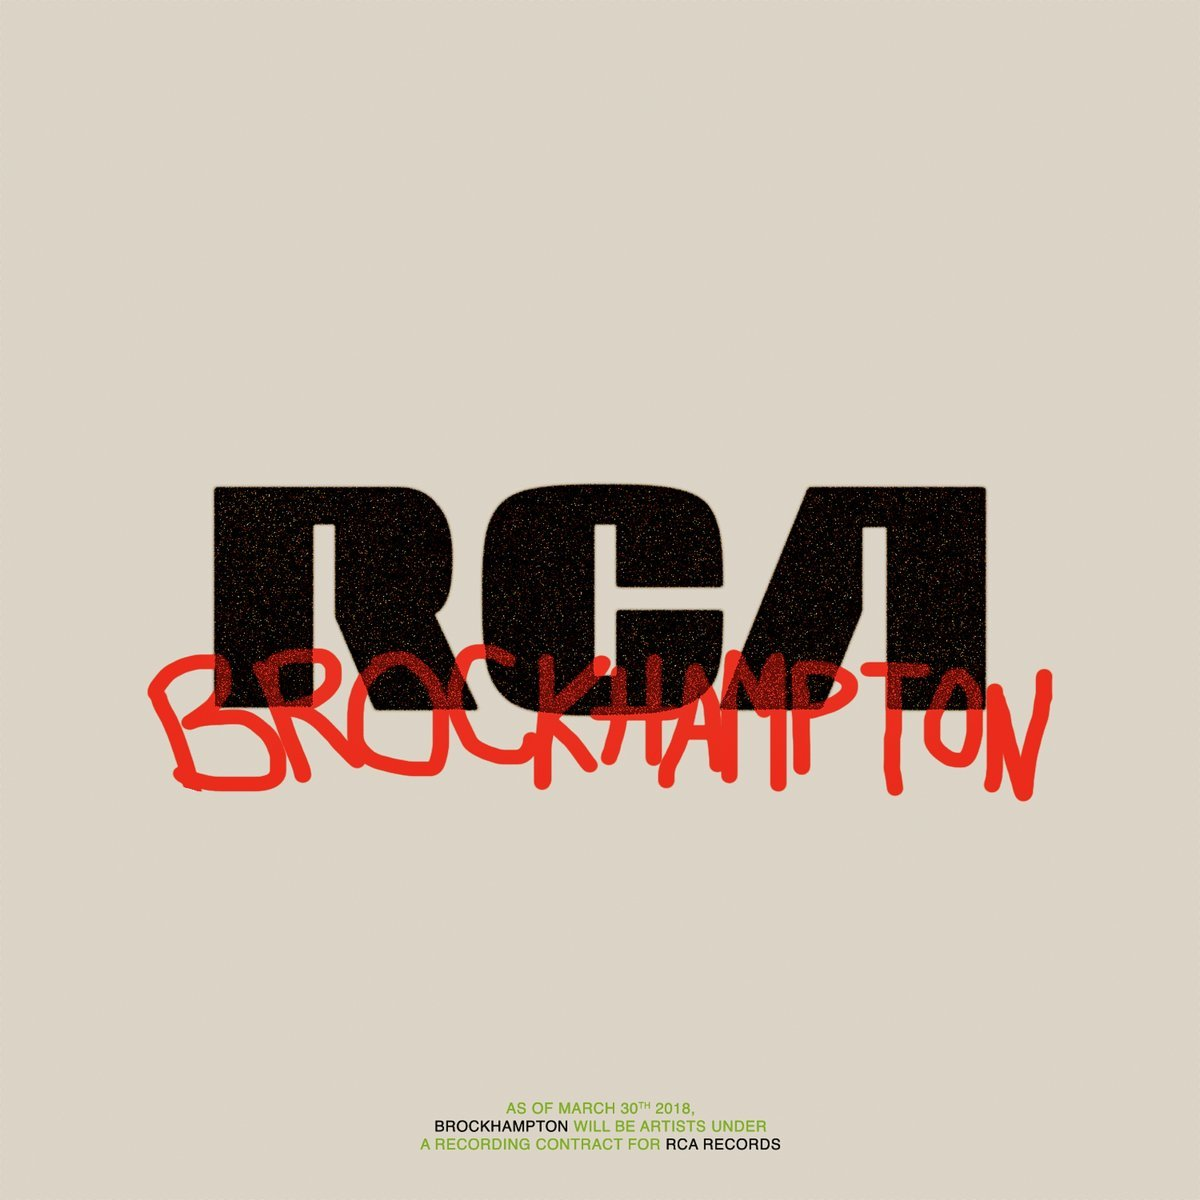 brockhampton rca records